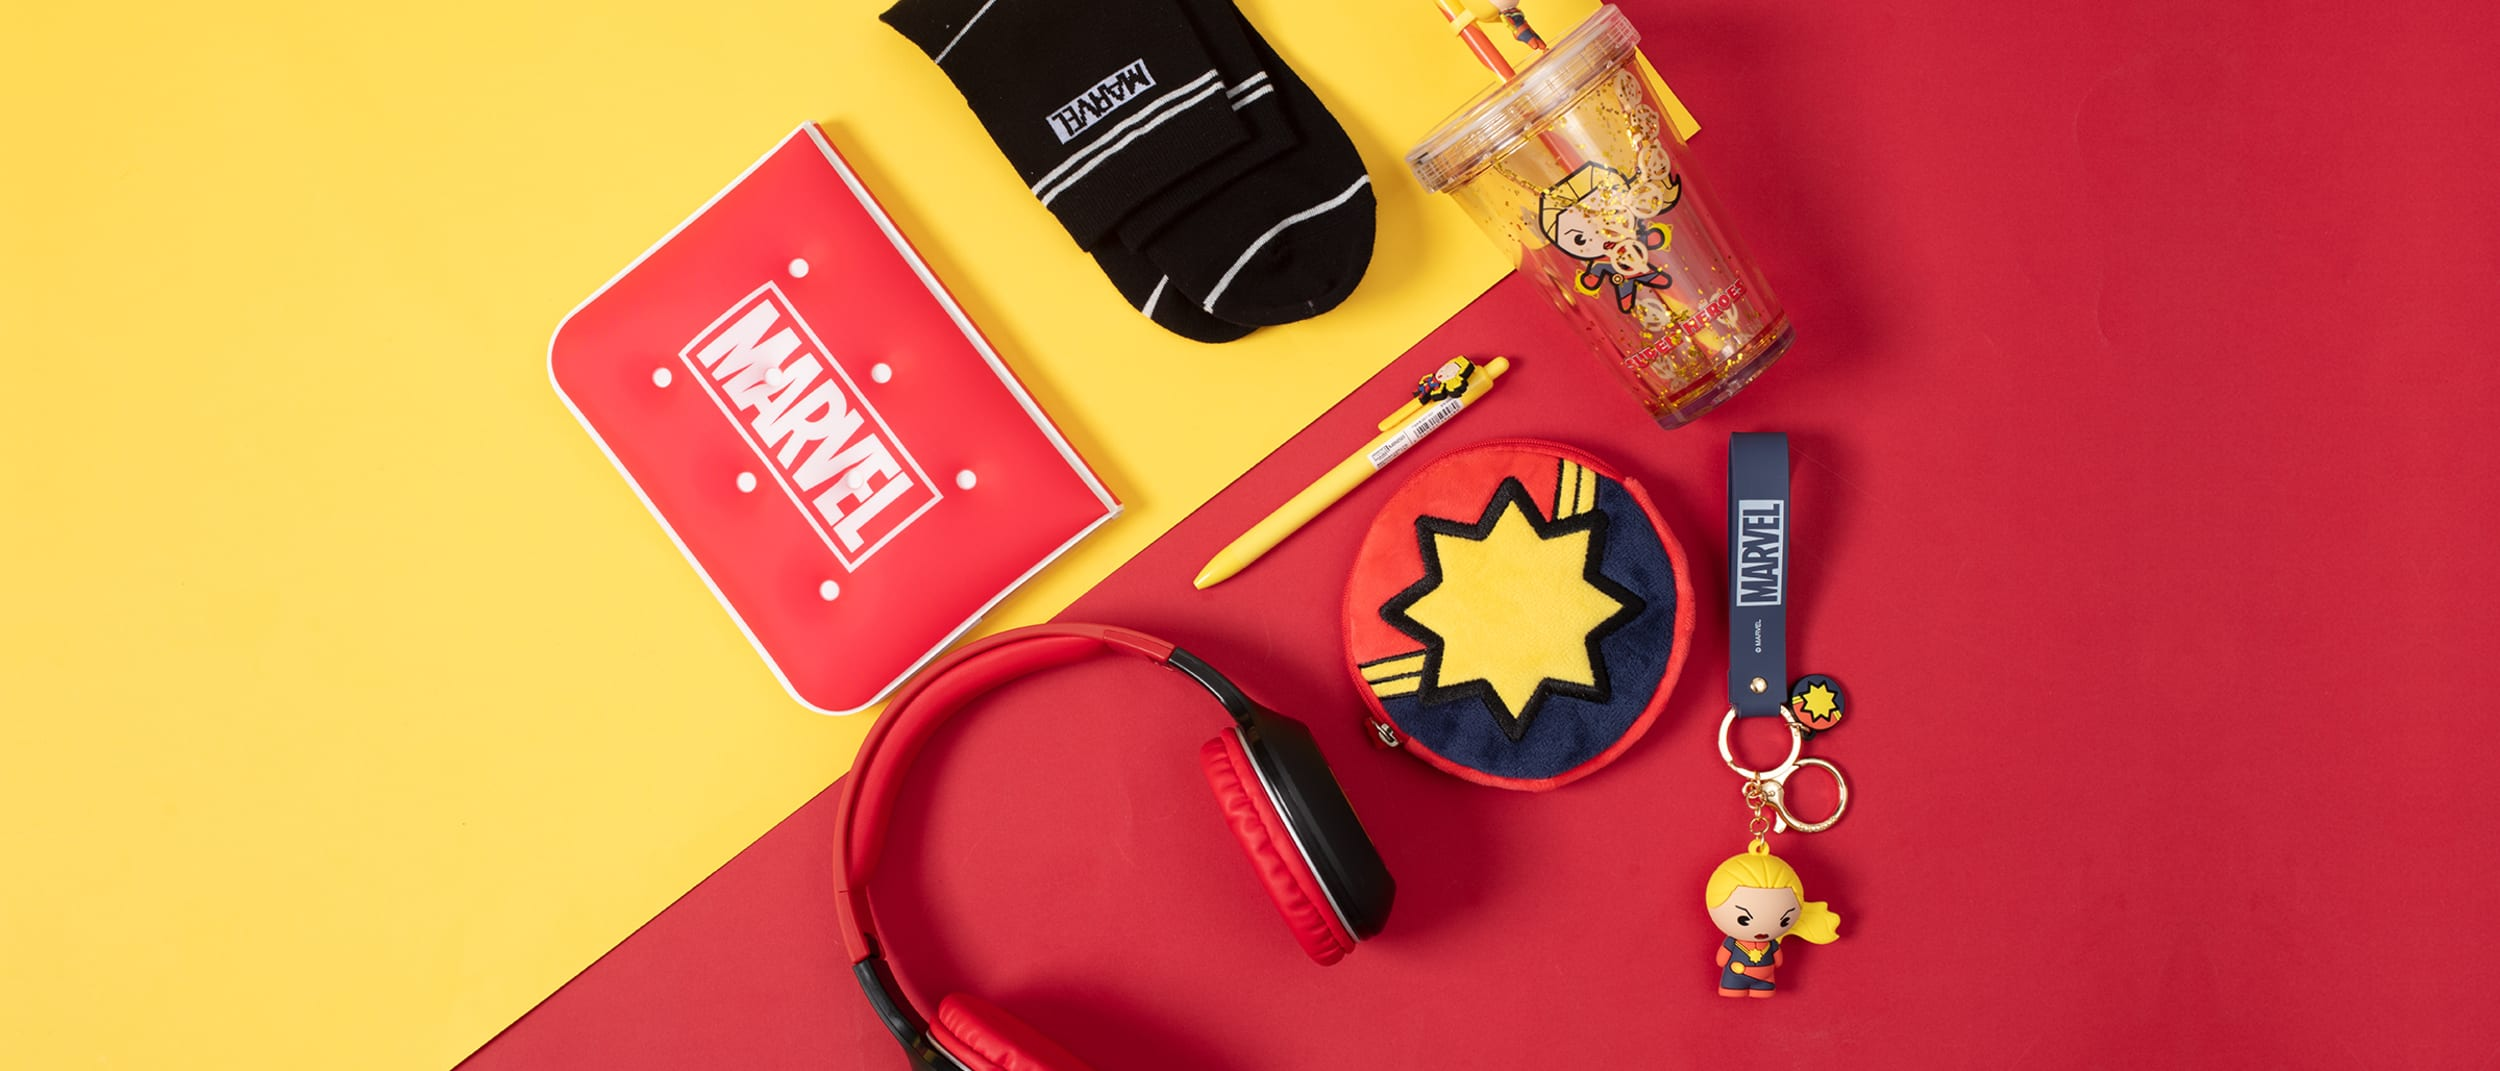 Miniso: Buy two get the third free on Marvel